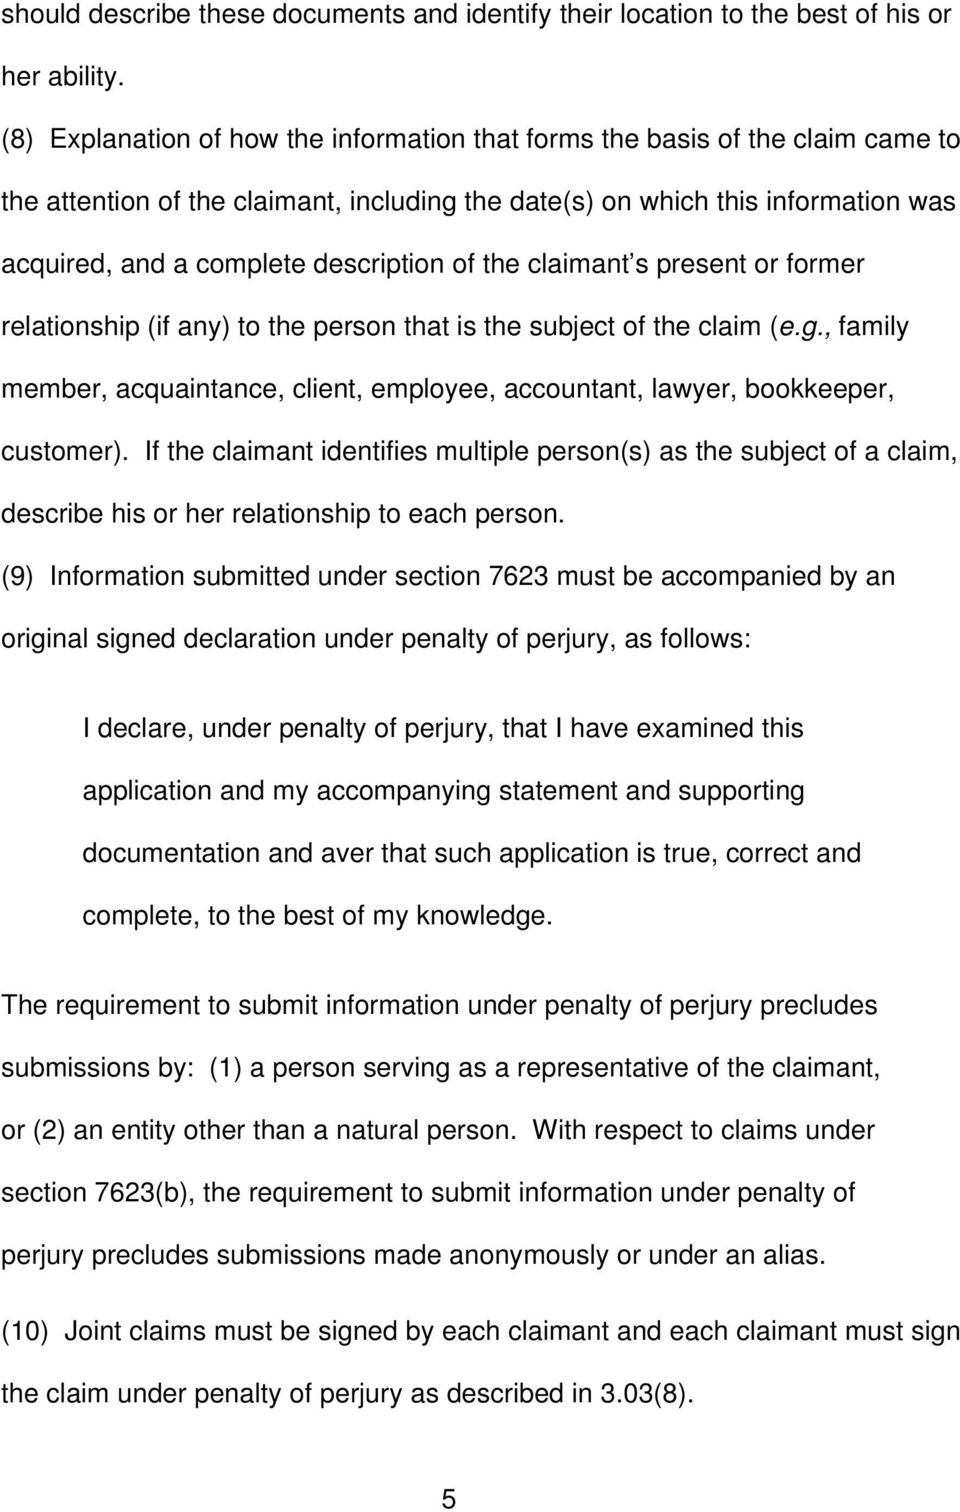 description of the claimant s present or former relationship (if any) to the person that is the subject of the claim (e.g.